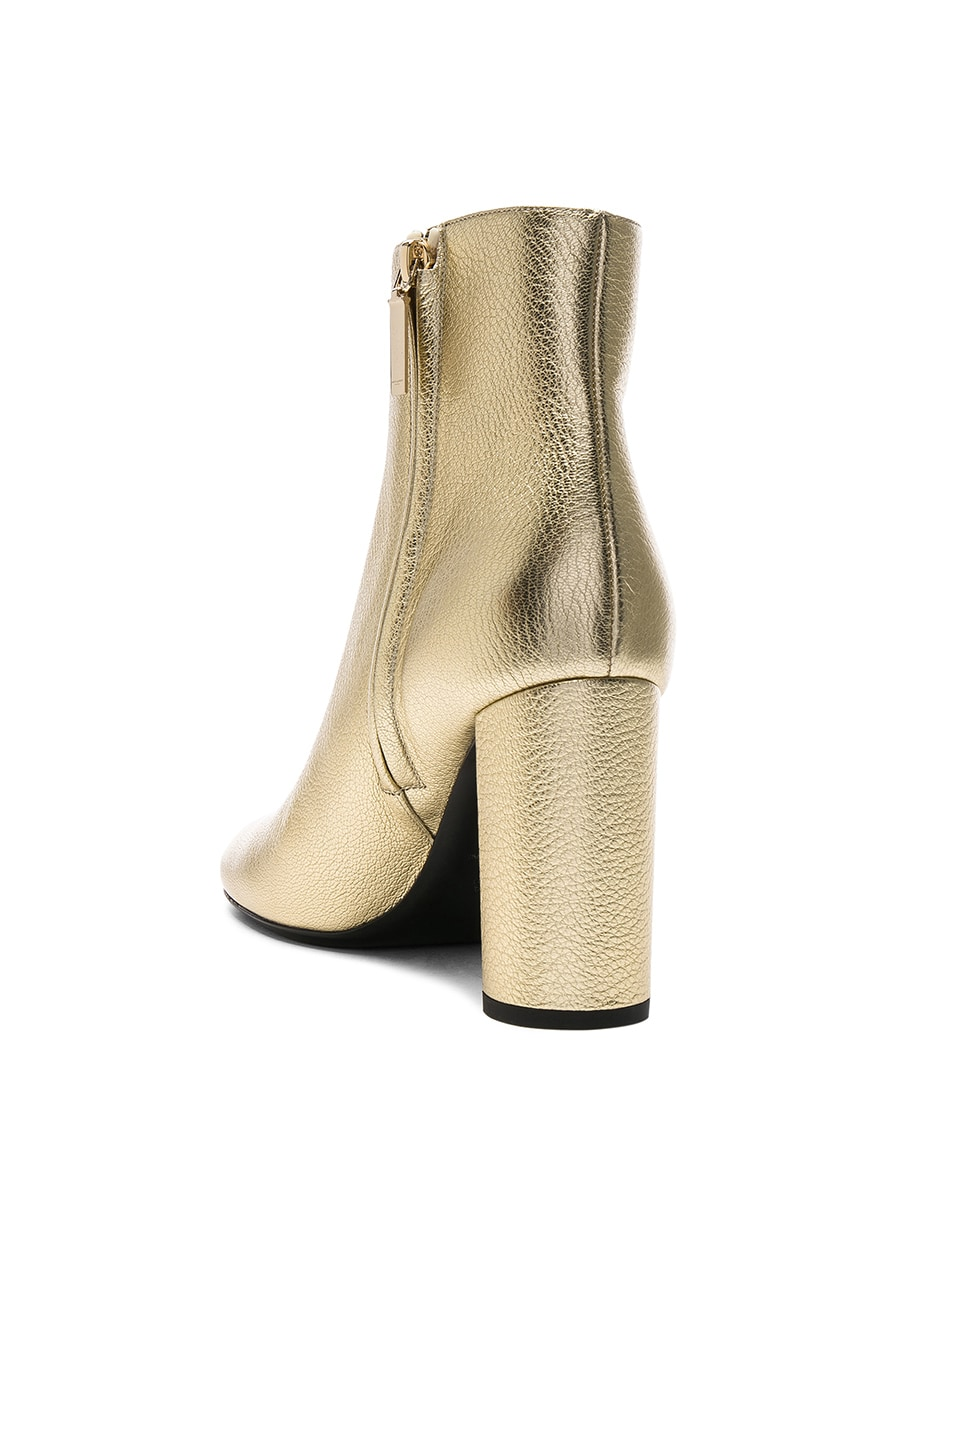 Image 3 of Saint Laurent Leather Loulou Boots in Pale Gold